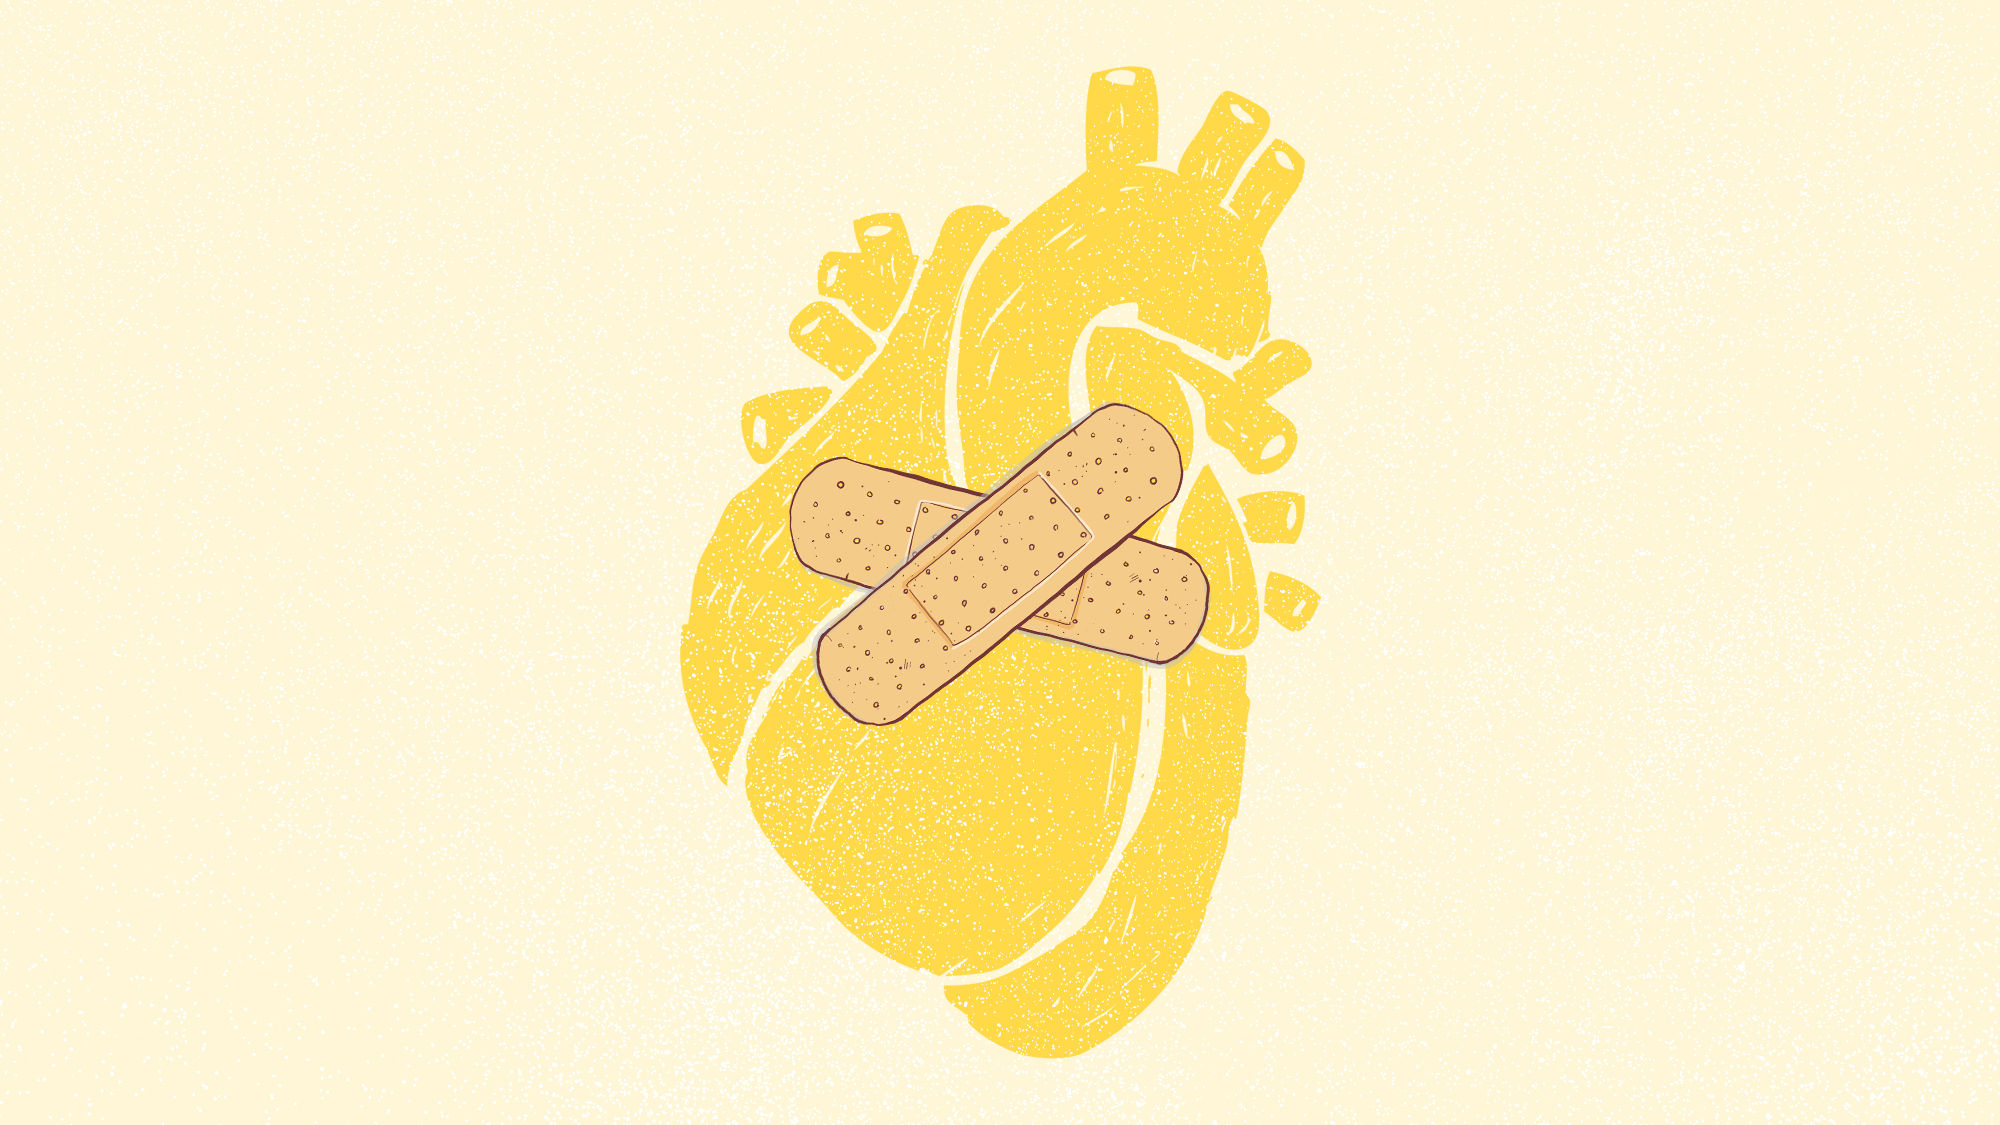 an illustration of a heart with two bandaids on it